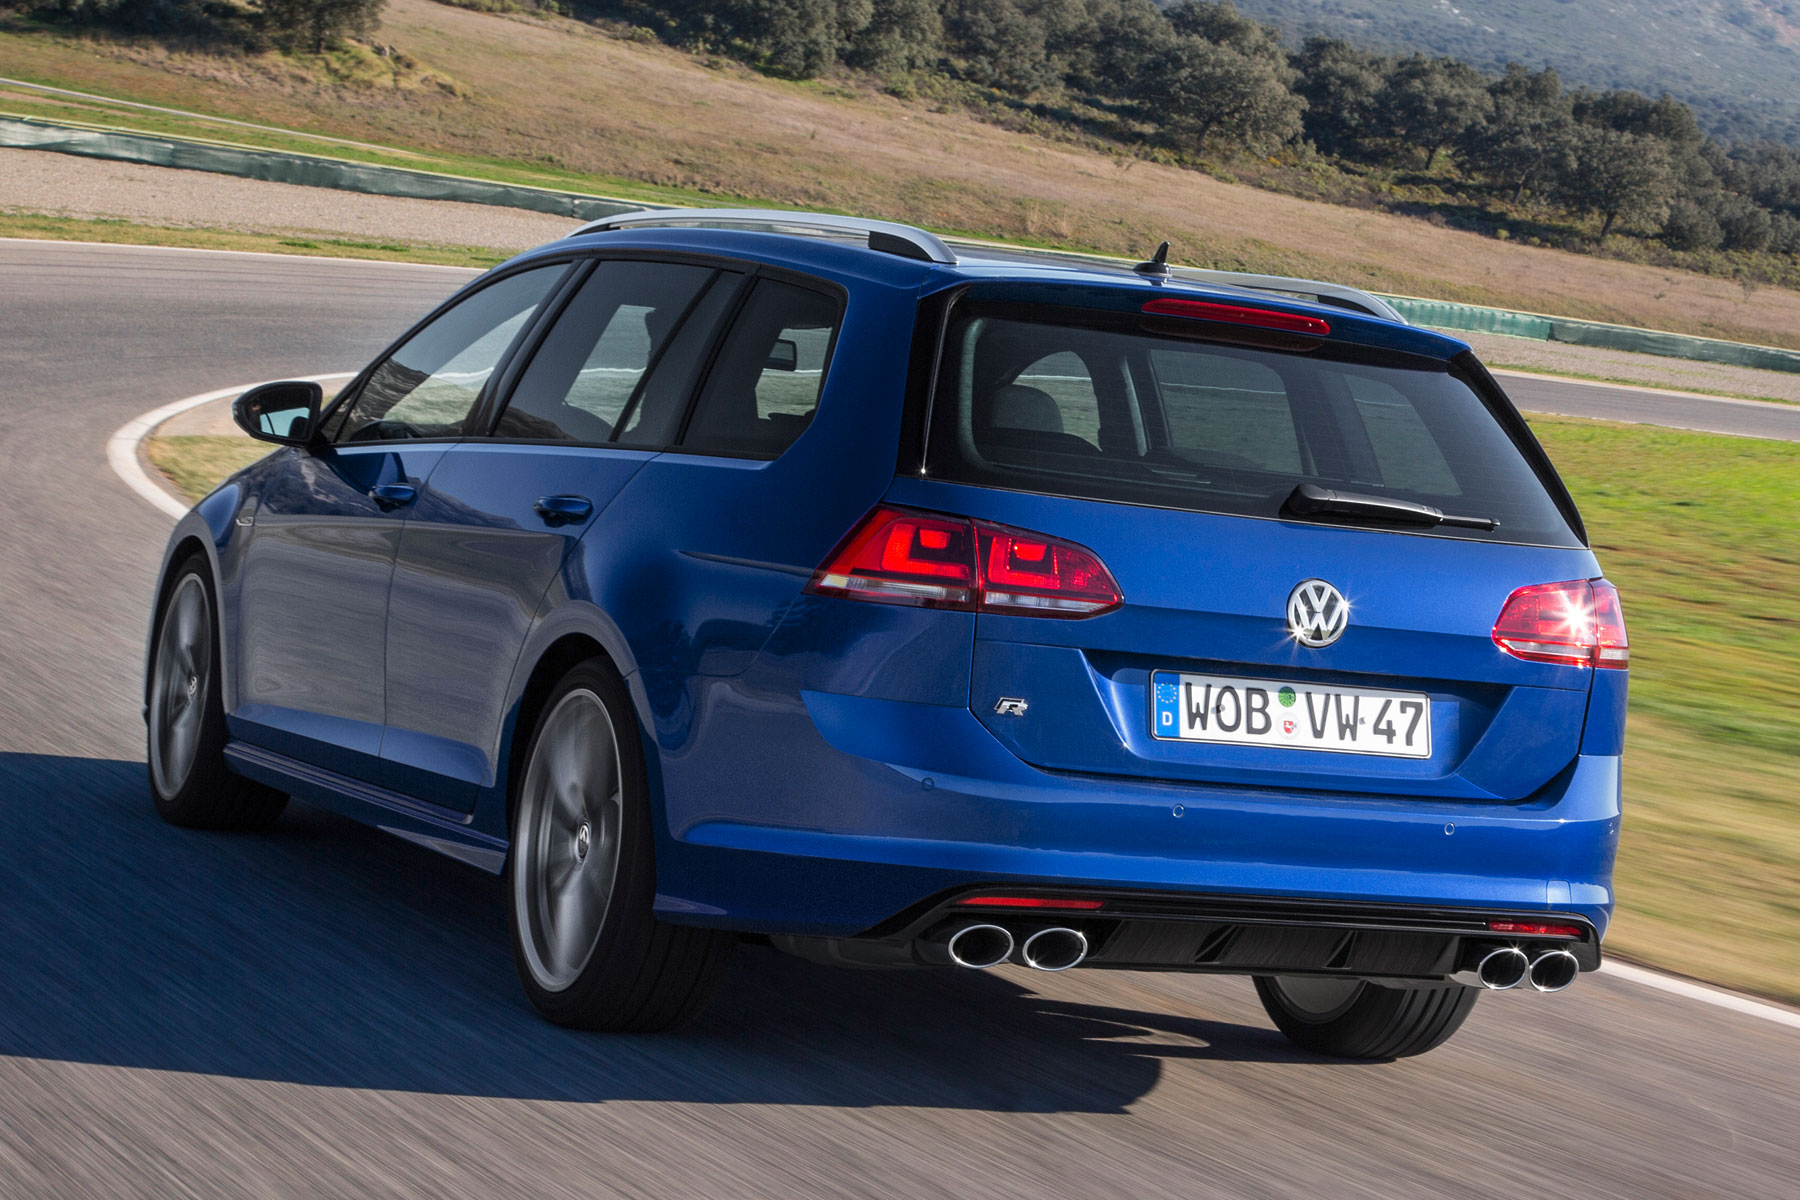 What's the Volkswagen Golf R like to drive?